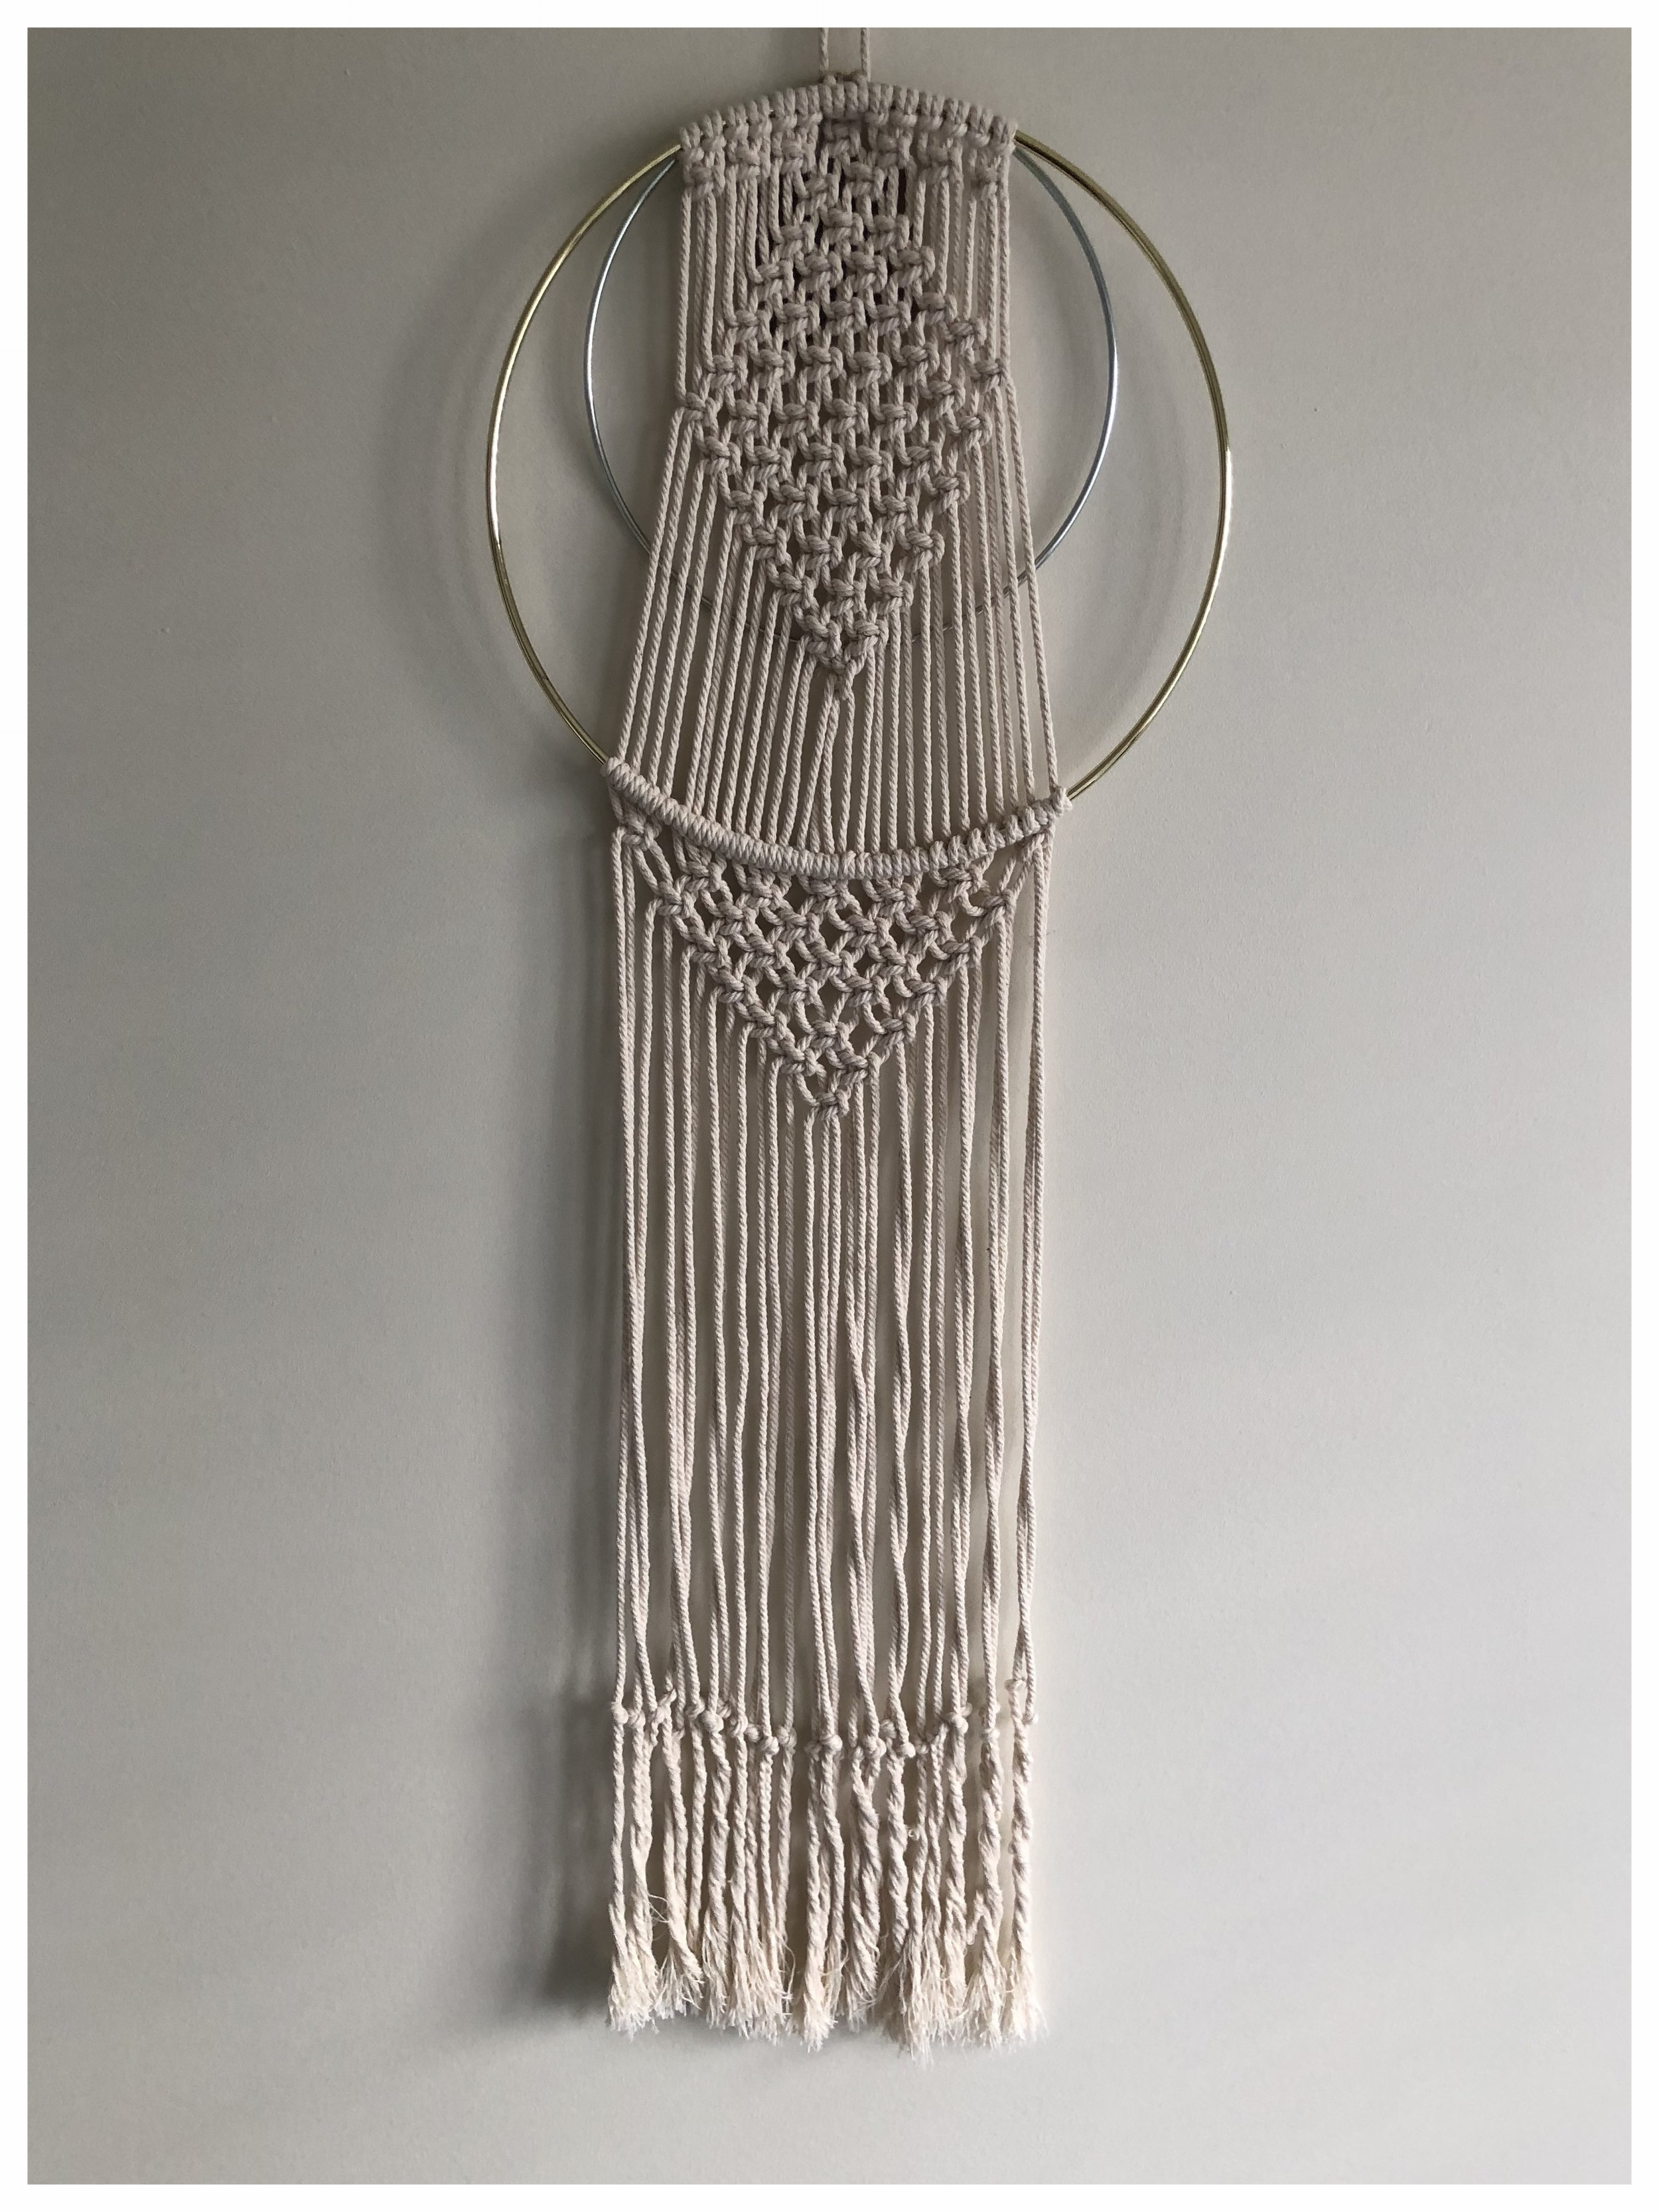 Handmade large macrame dream catcher with double ring feature £53